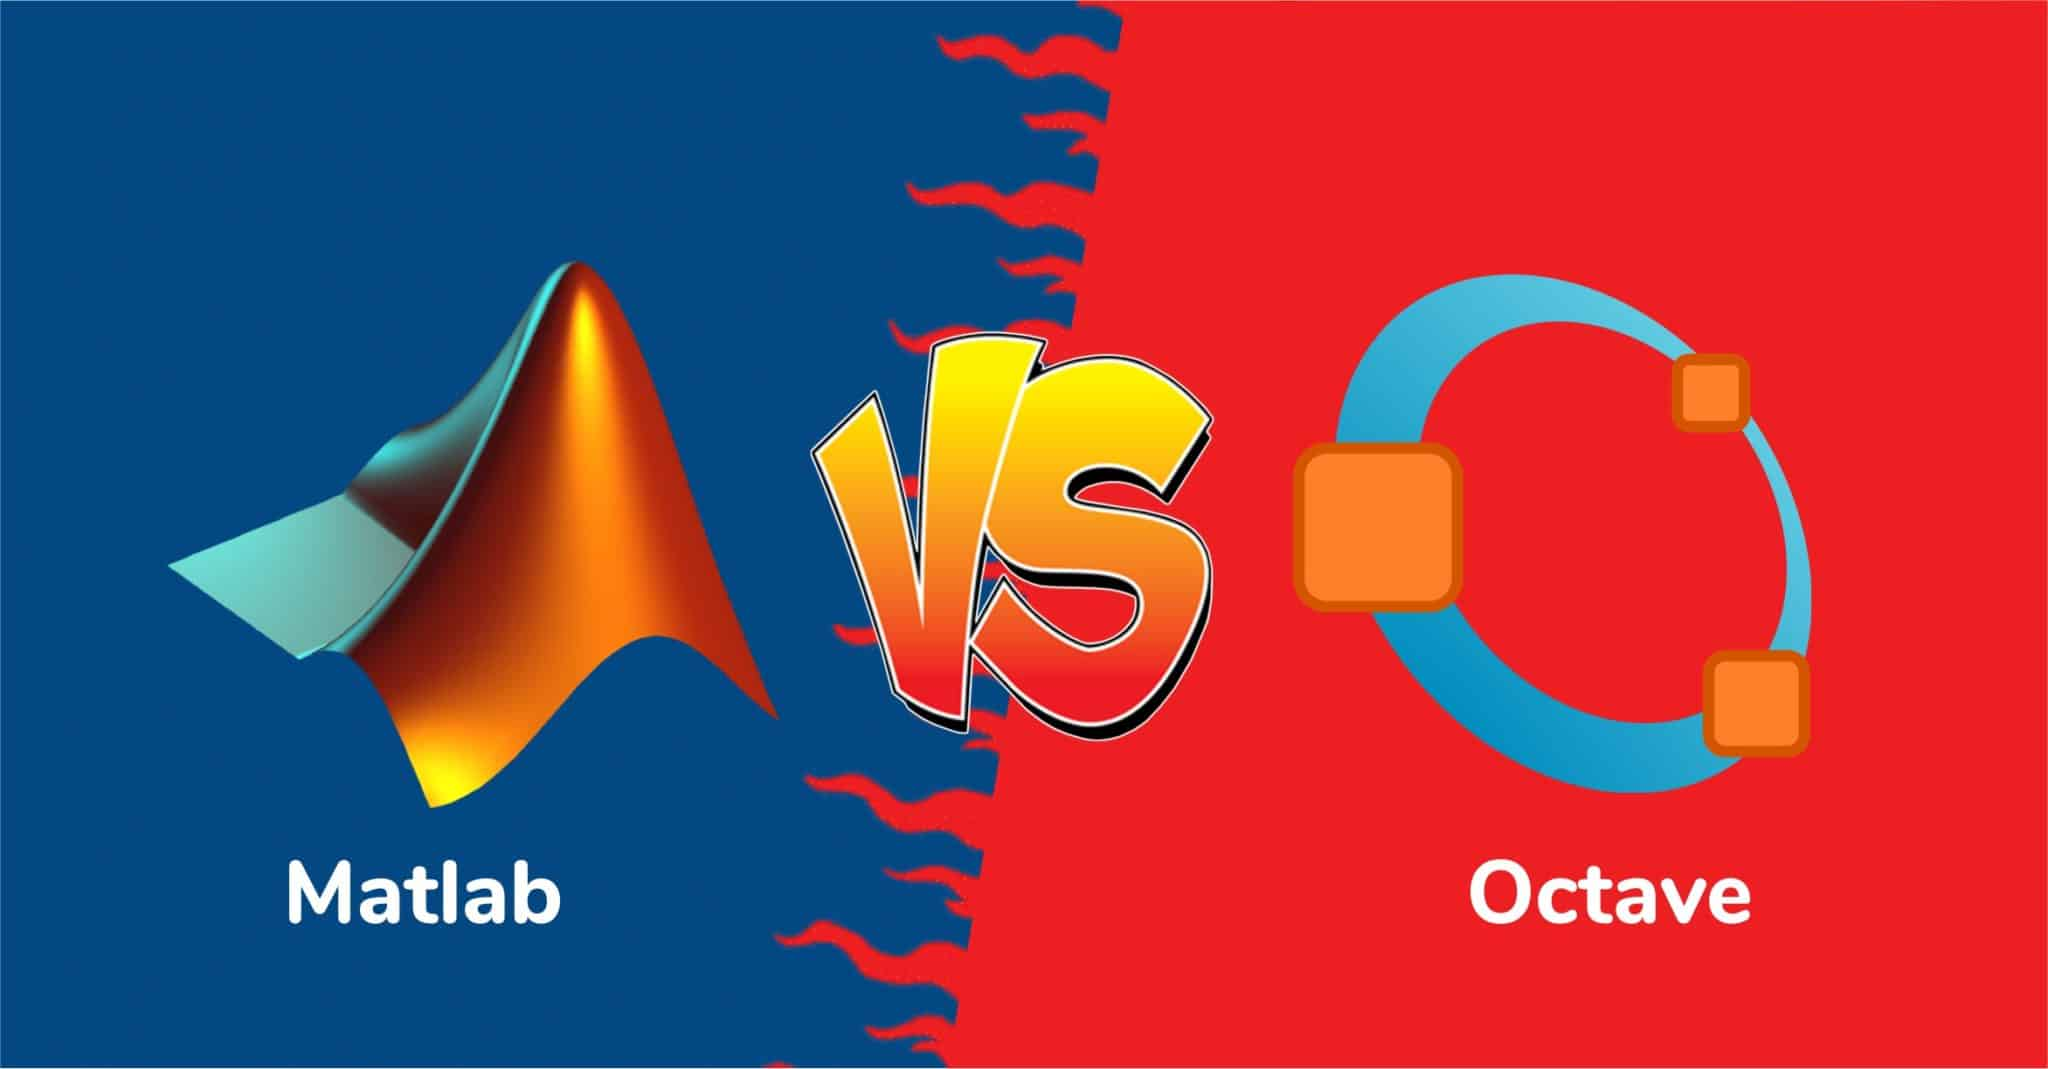 MATLAB vs Octave: All You Need To Know